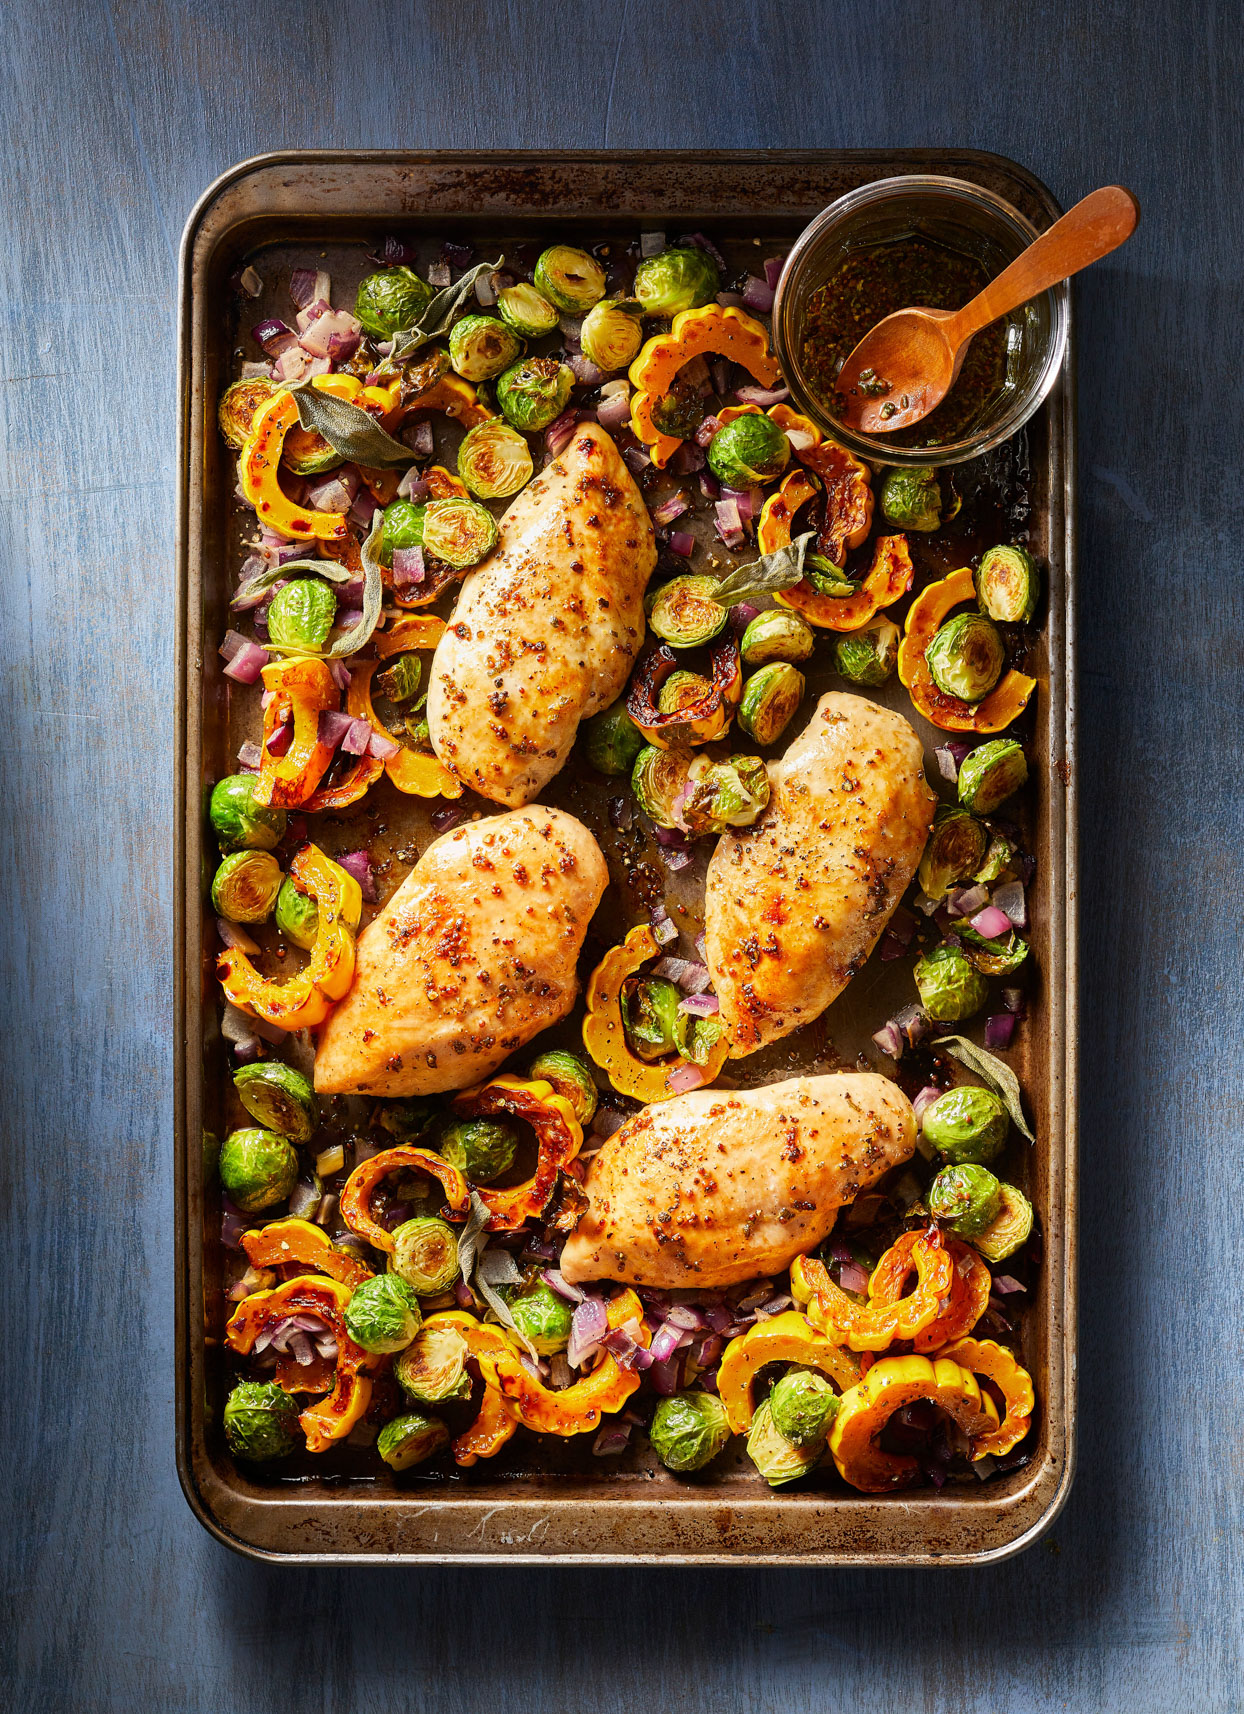 Sheet-Pan Chicken and Vegetables